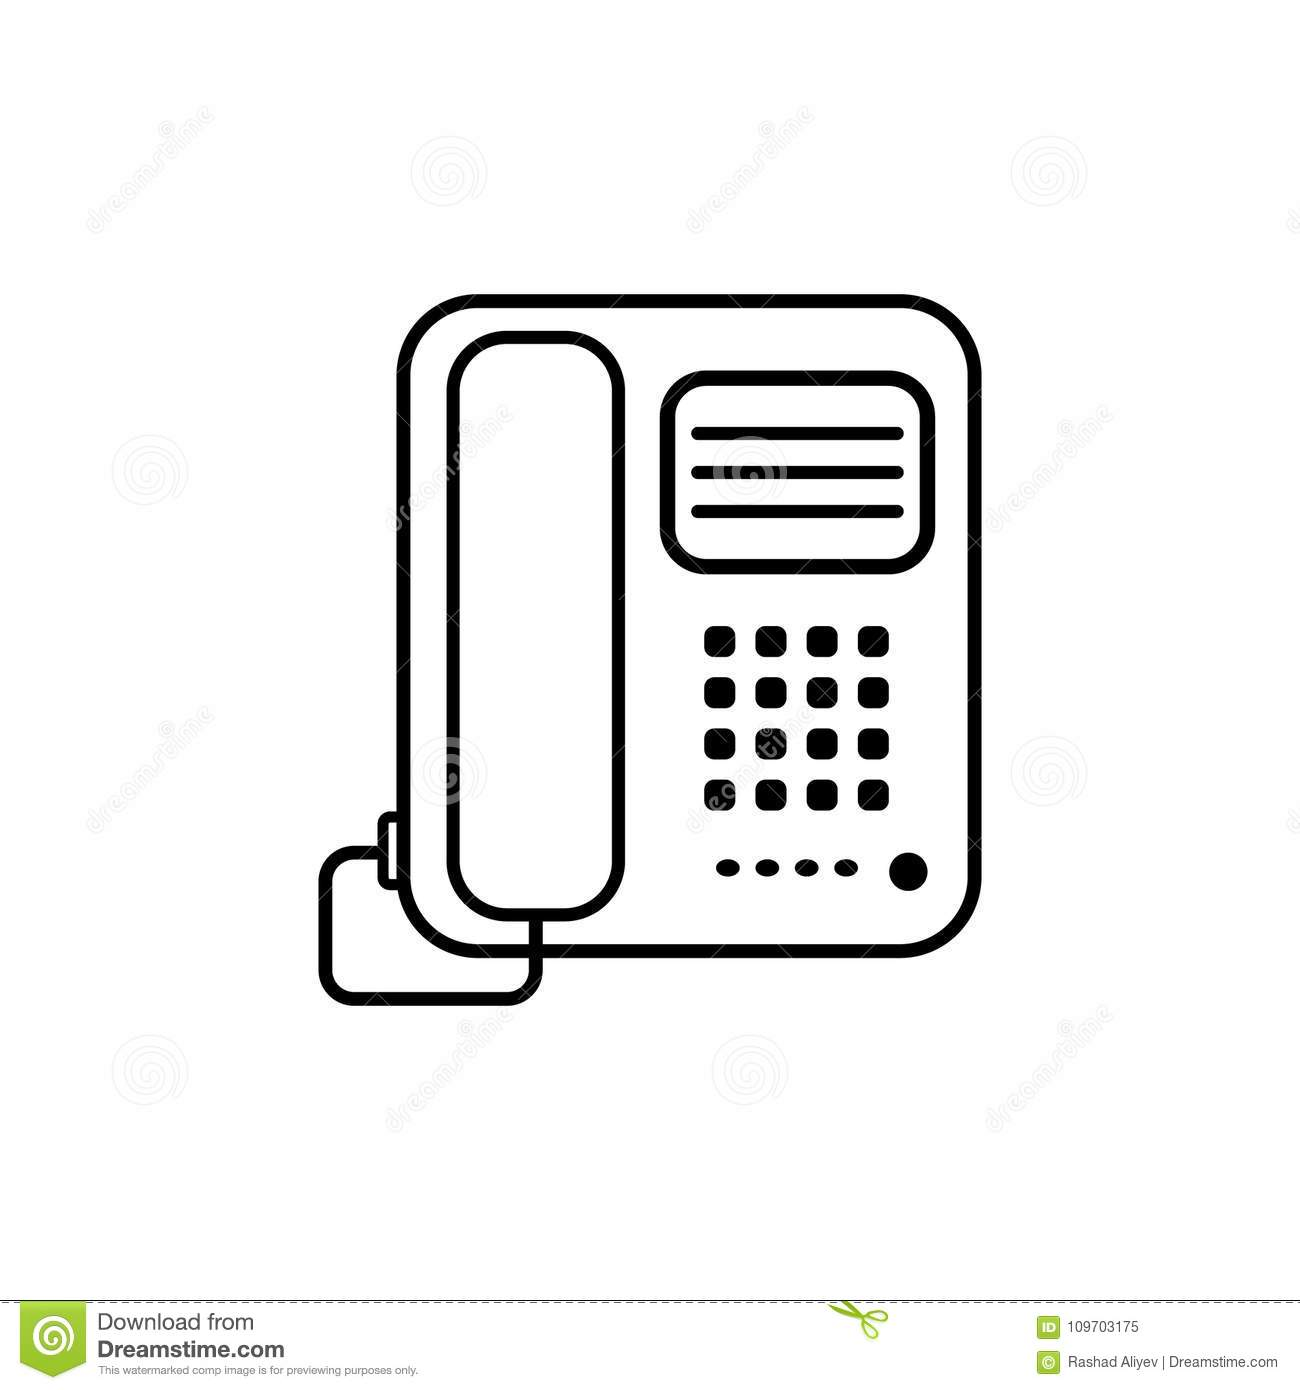 Office Phone Icon  Element Of Home Appliances For Mobile